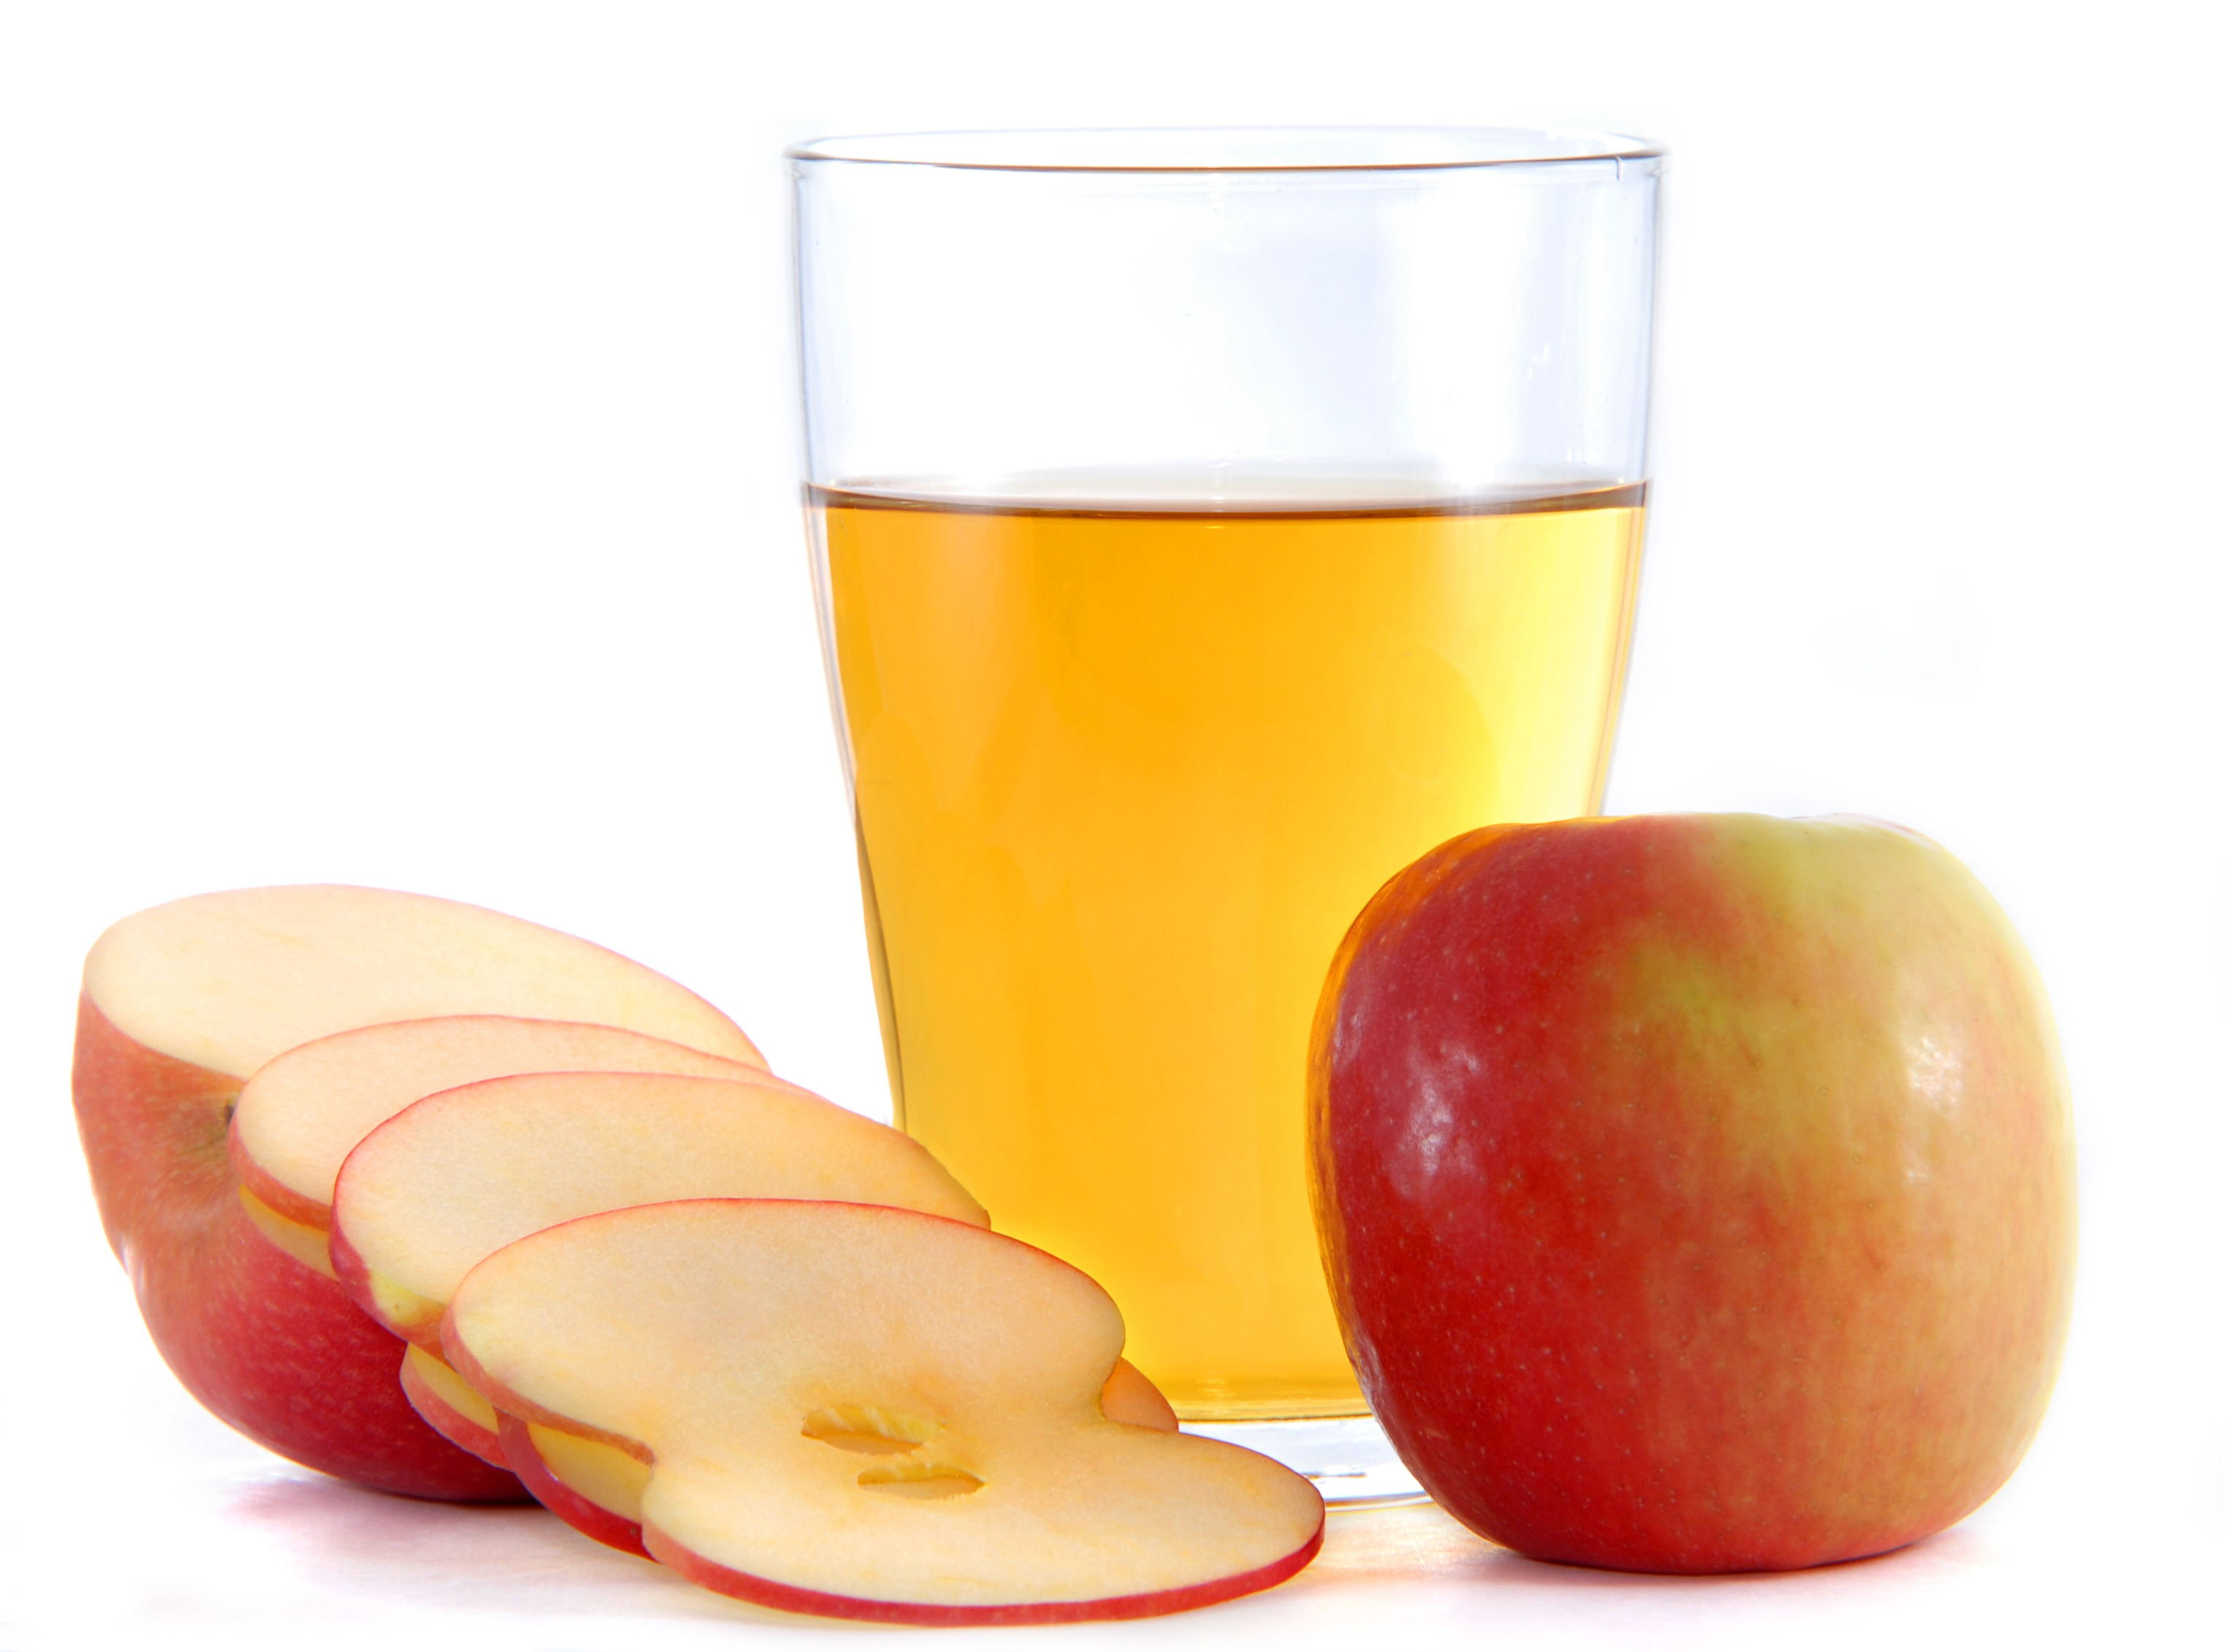 acv in glass with apples